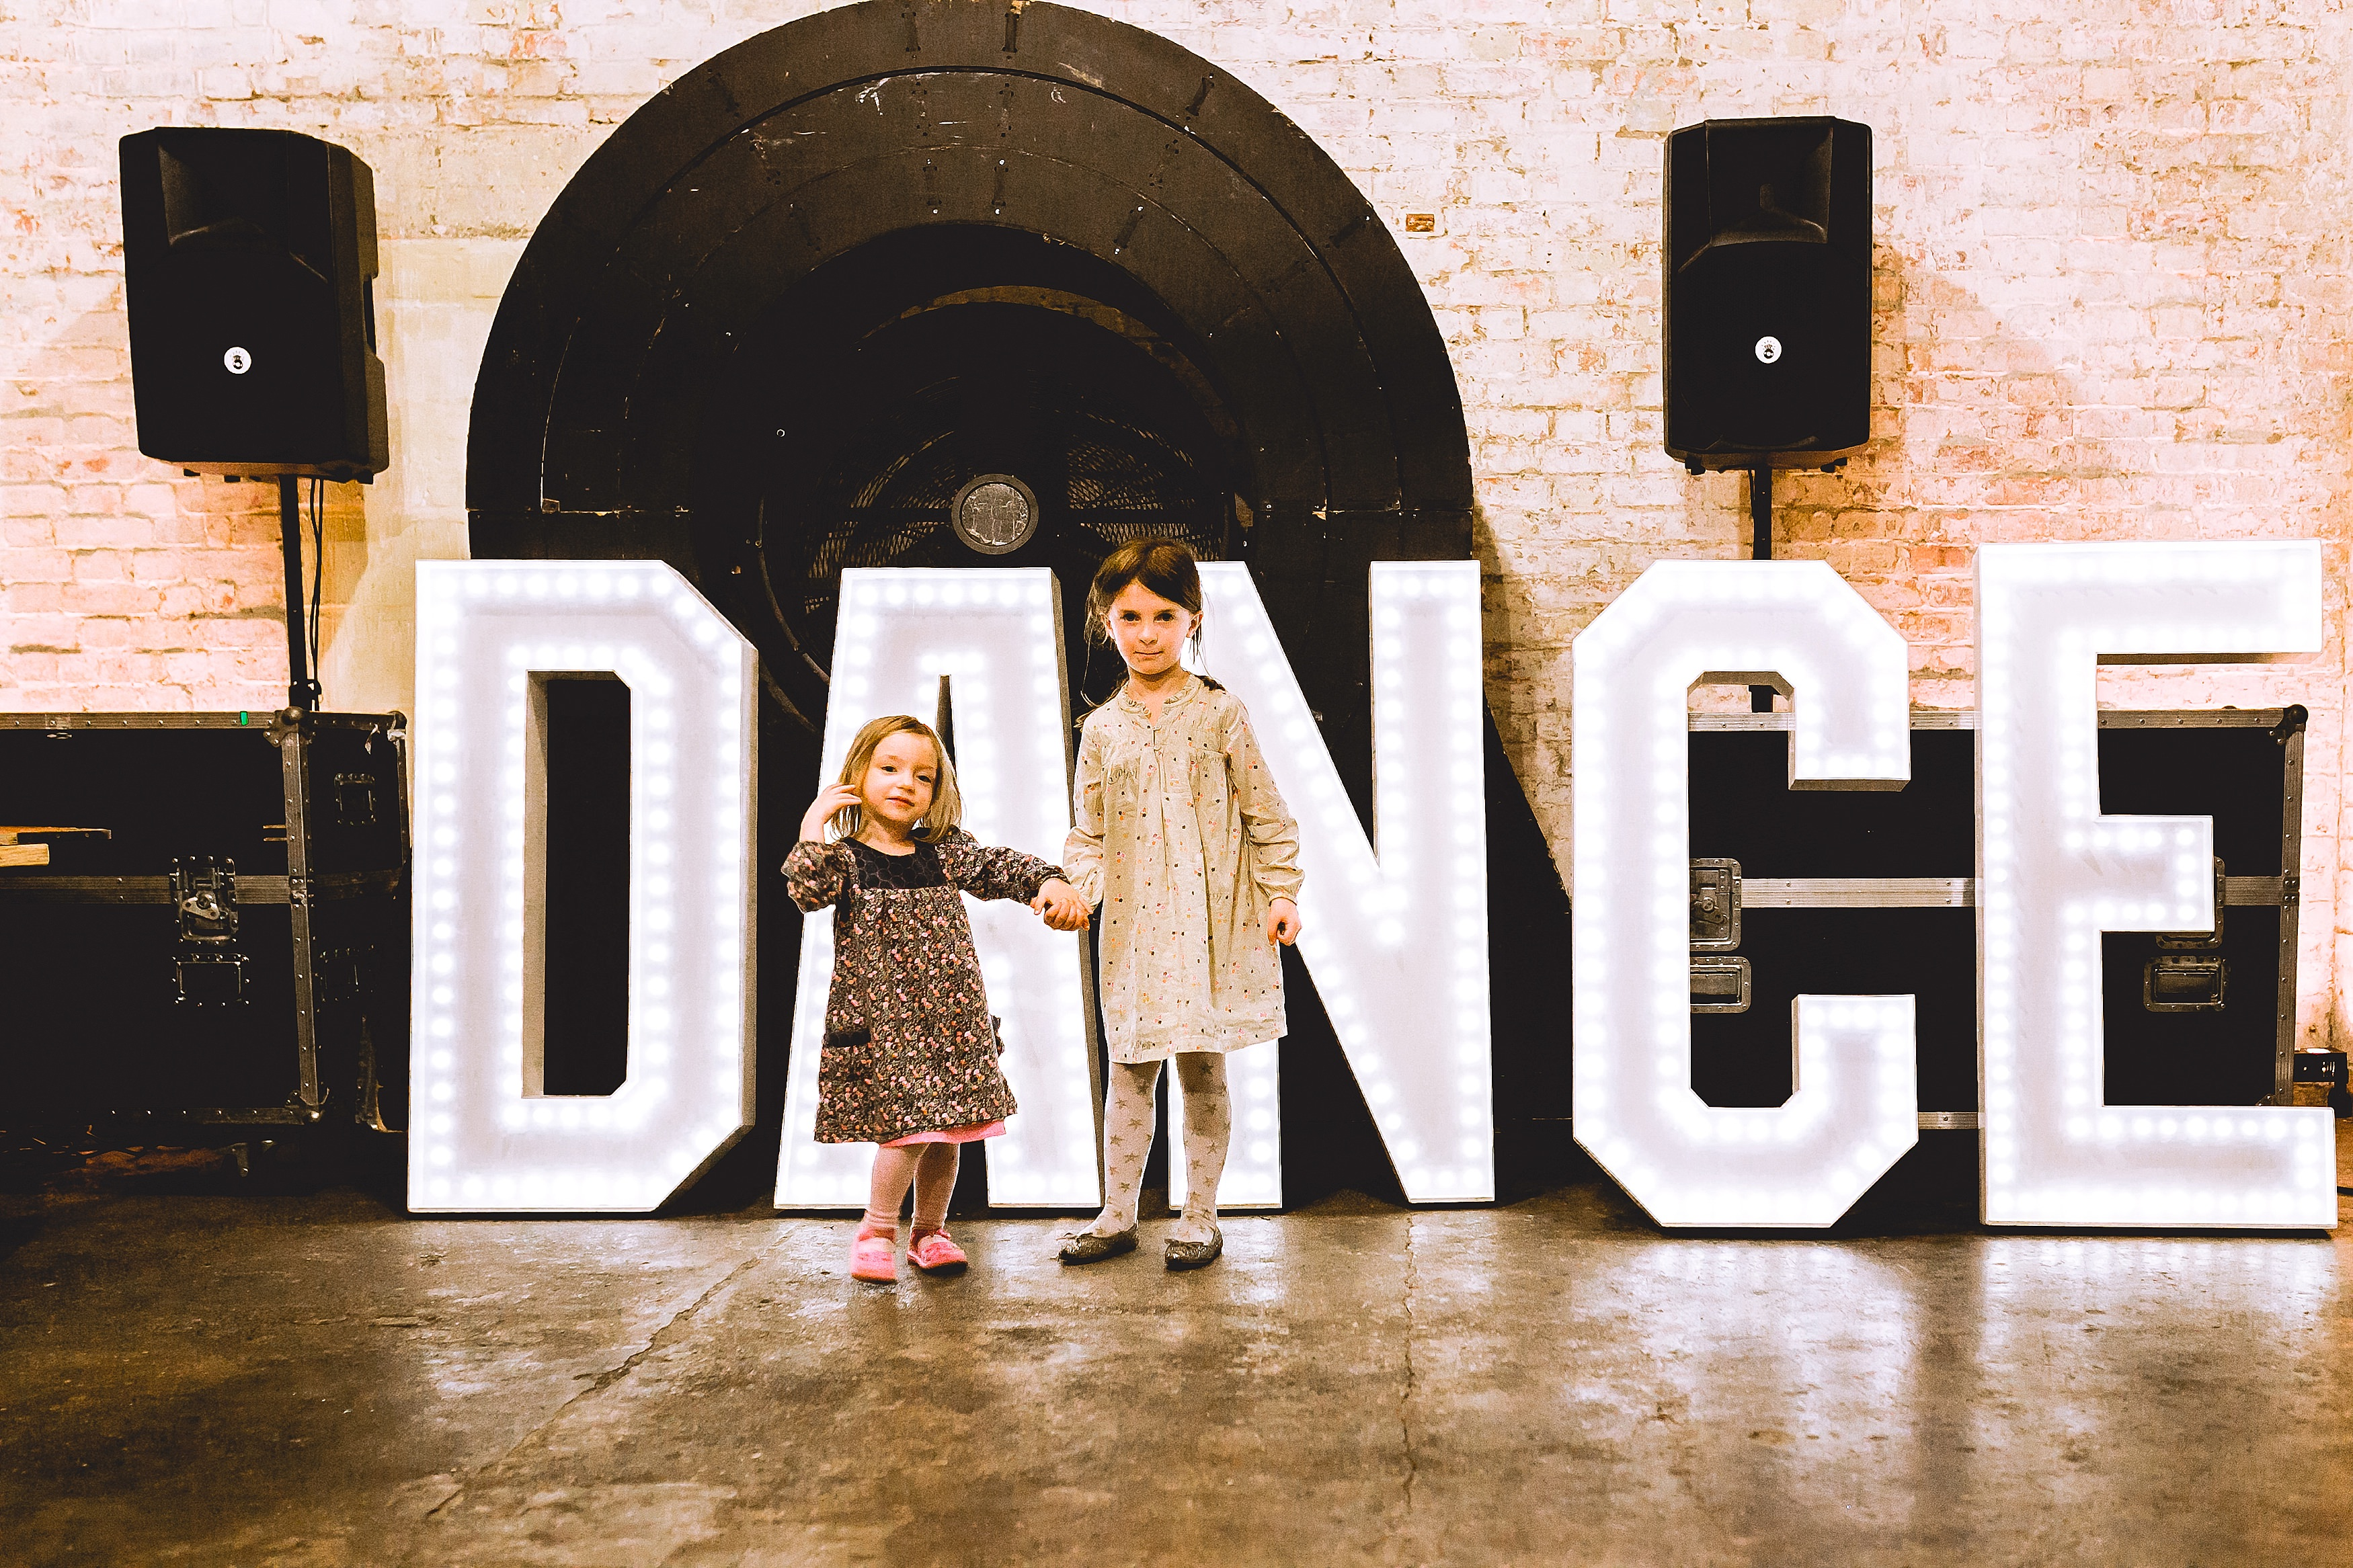 gatsby quirky wedding in london warehouse one firendly place greenwich